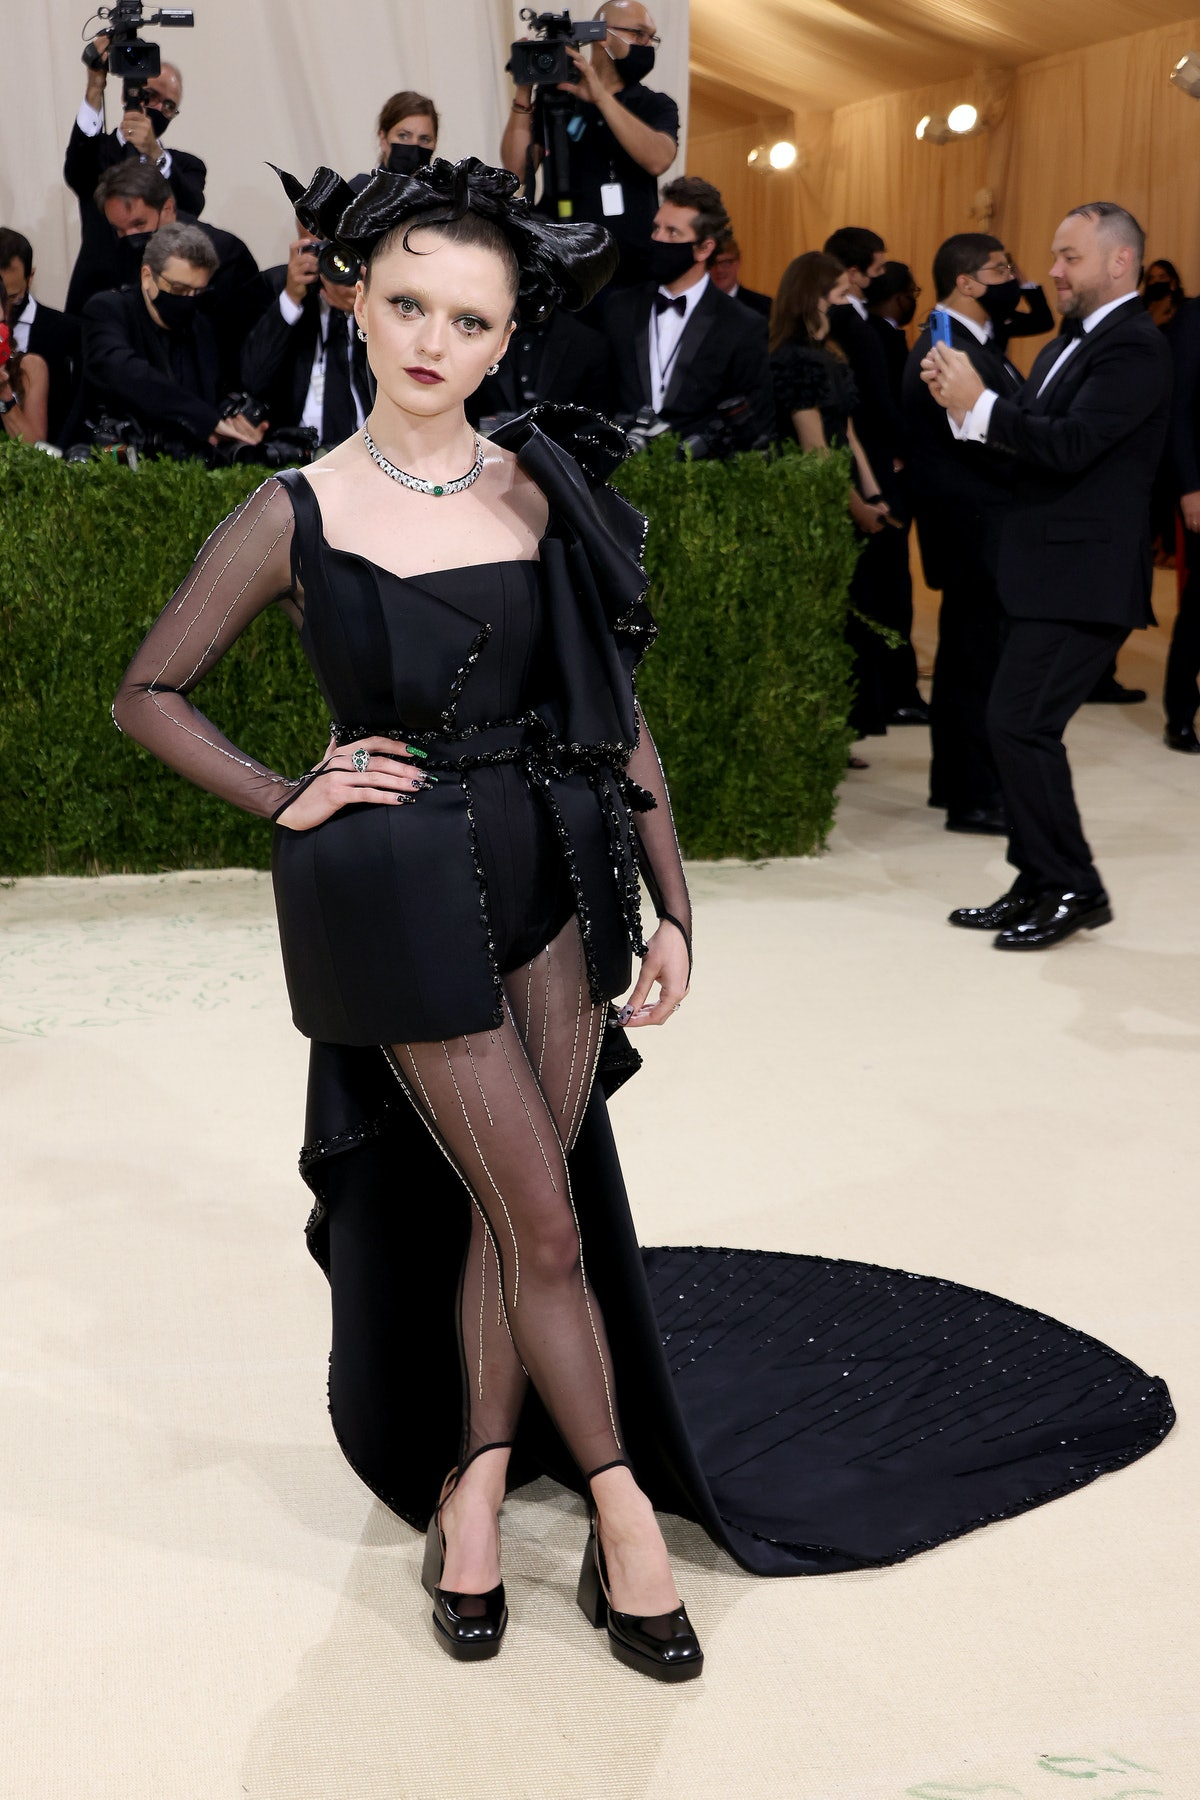 Maisie Williams attends The 2021 Met Gala Celebrating In America: A Lexicon Of Fashion at Metropolit...